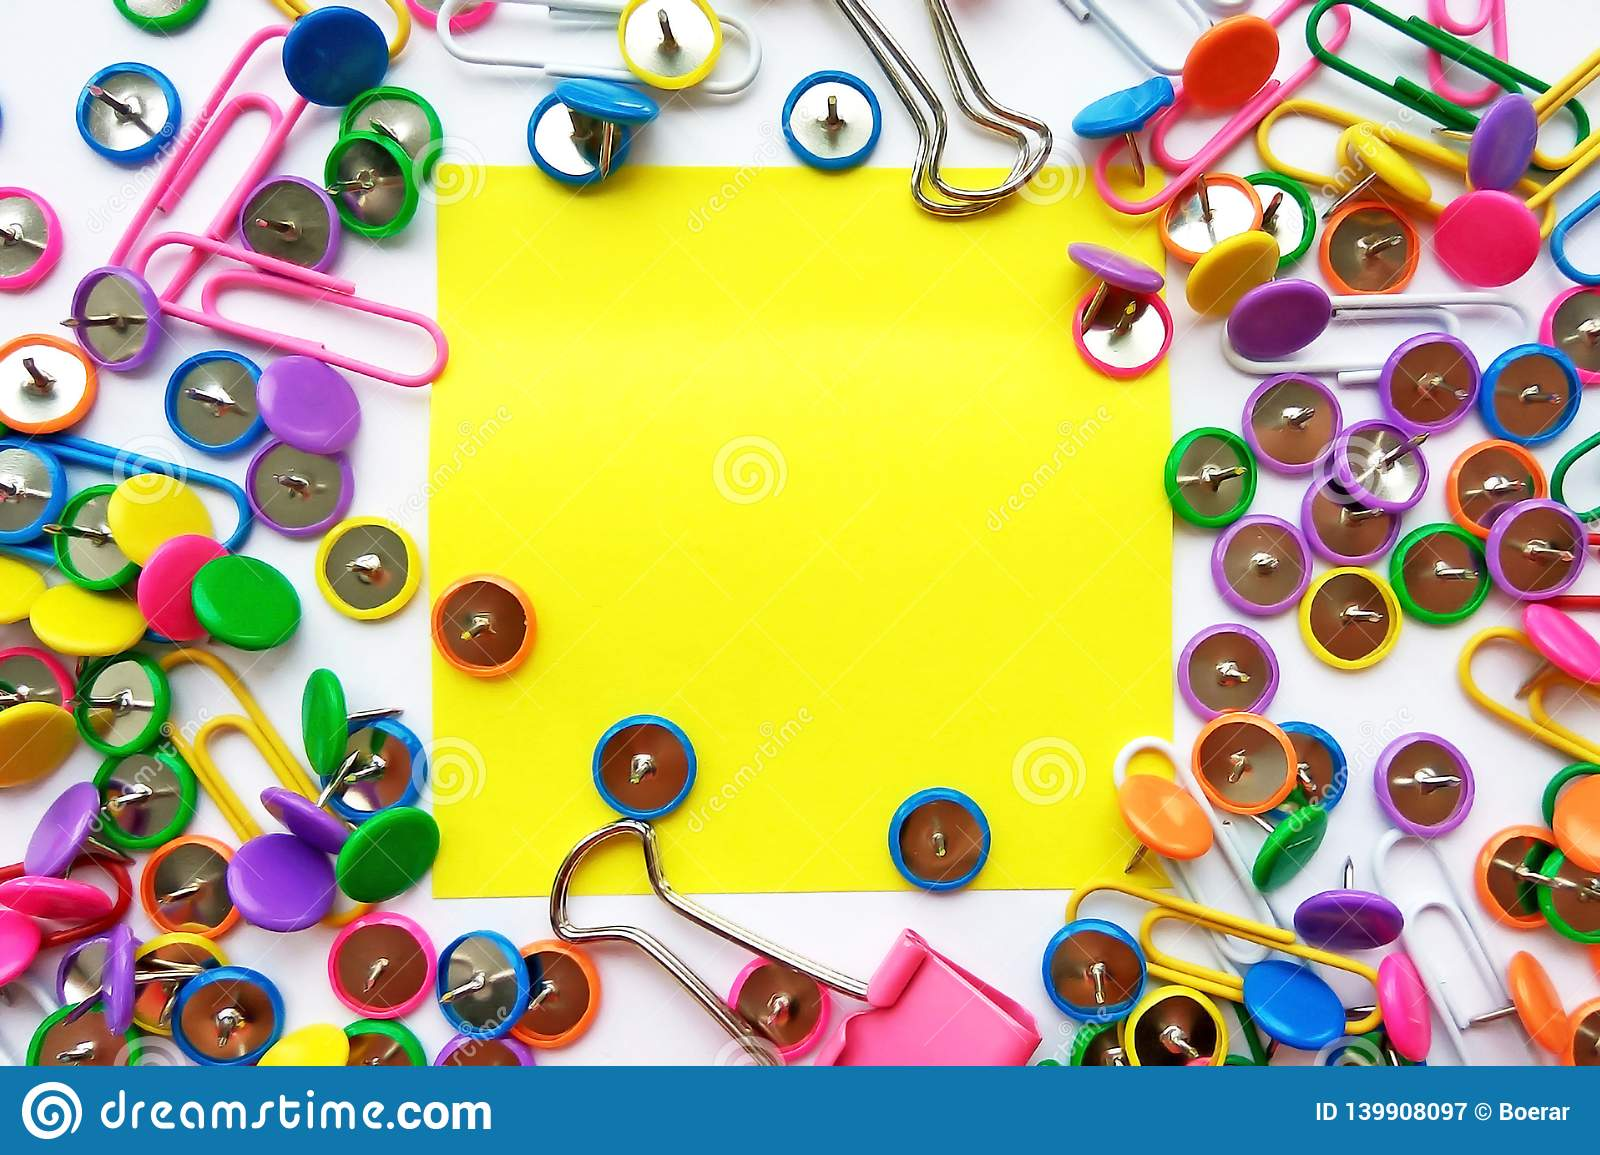 School and office supplies paper clips, pins, notes, stickers on white background